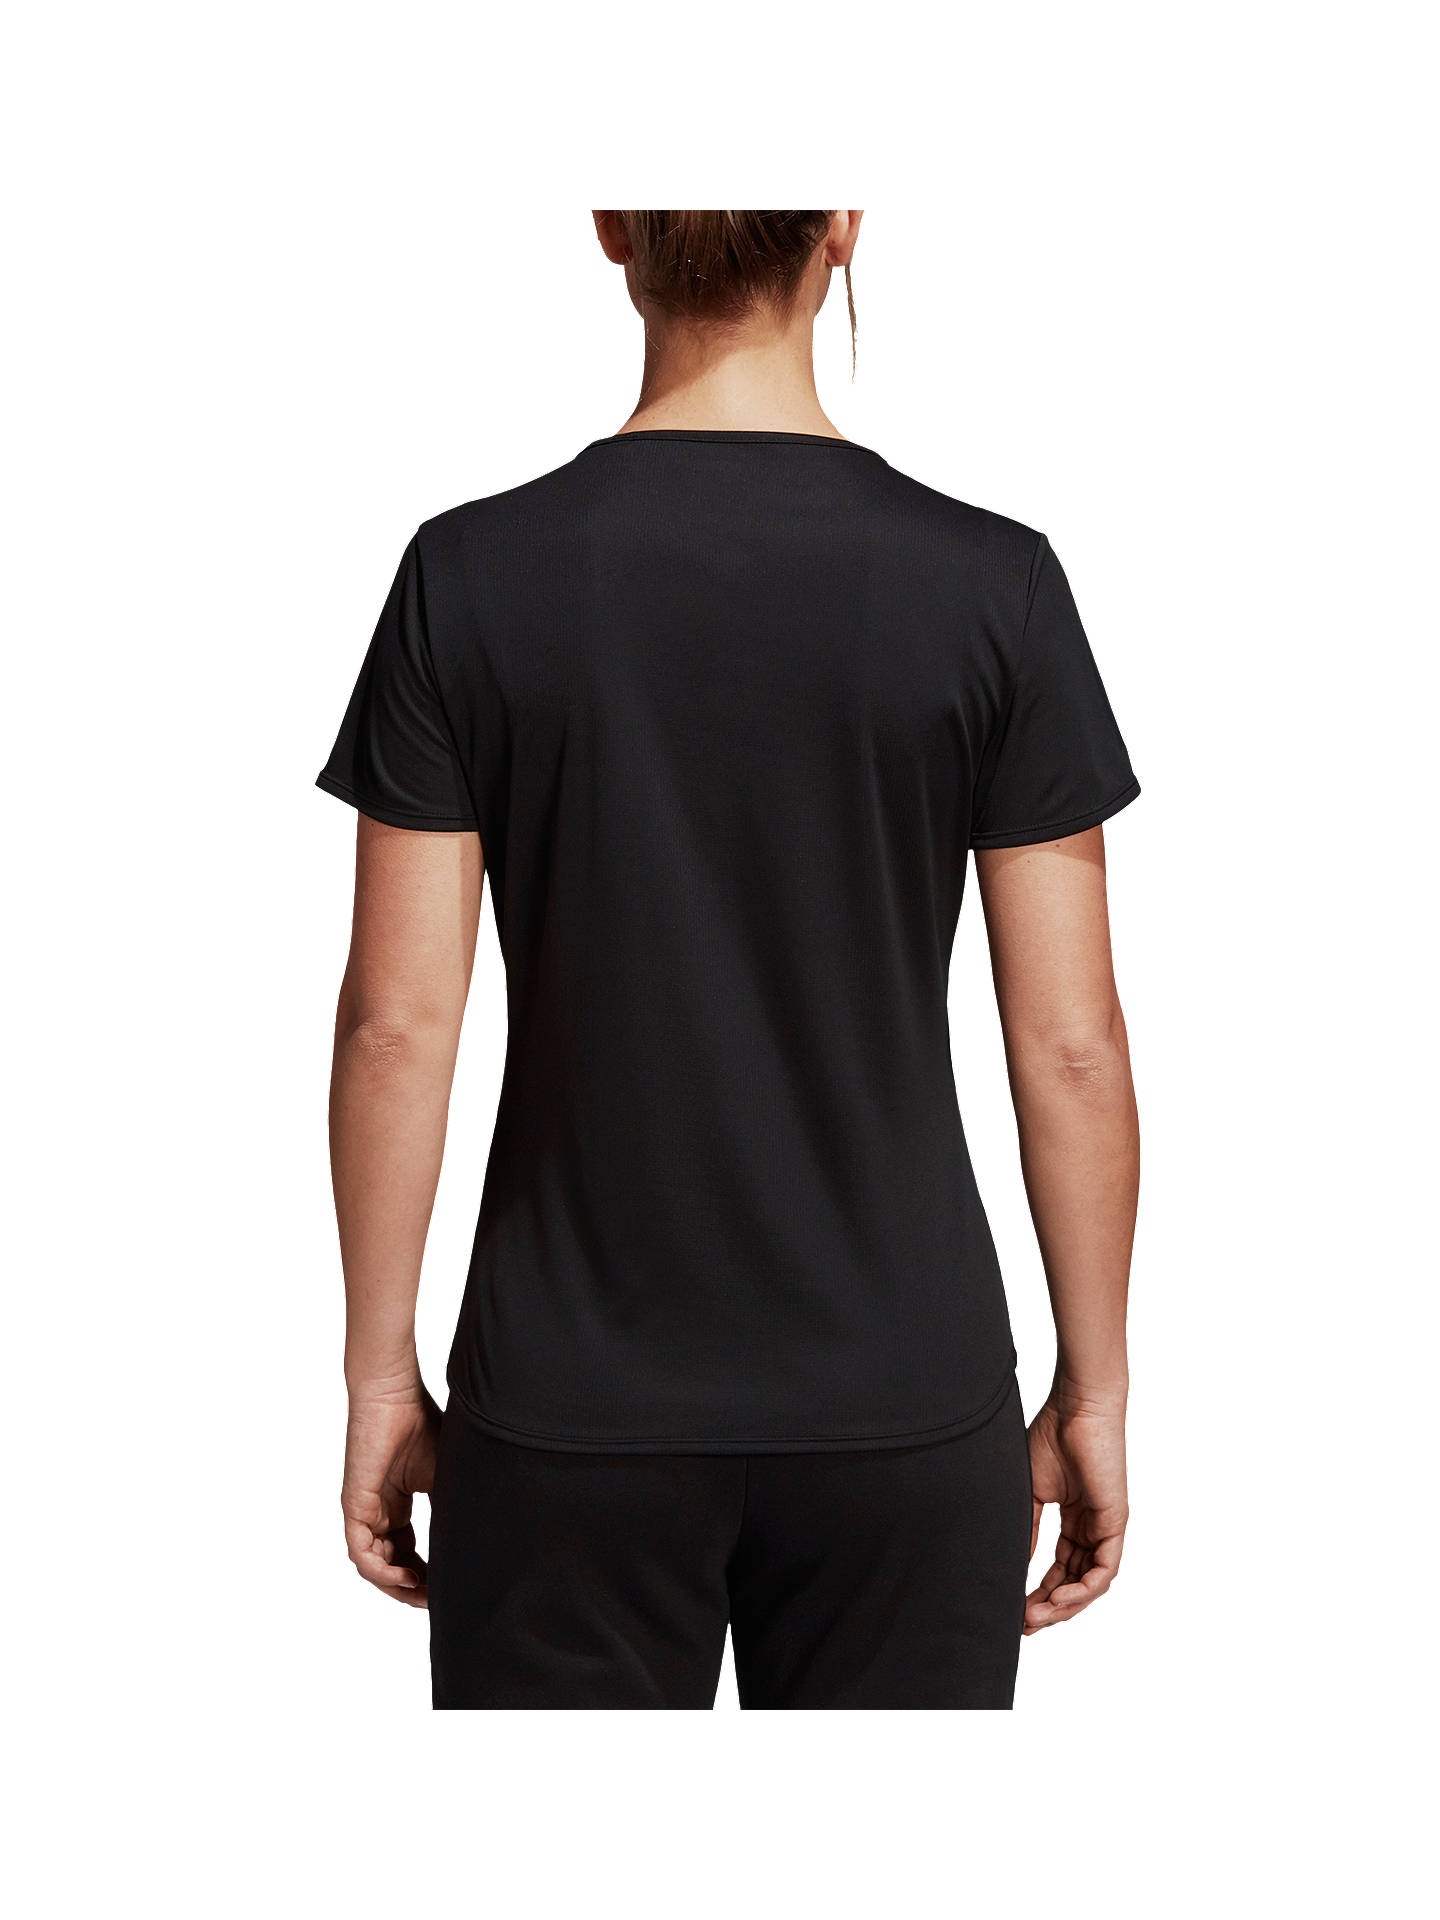 Buyadidas Response Short Sleeve Running T-Shirt, Black, XS Online at johnlewis.com